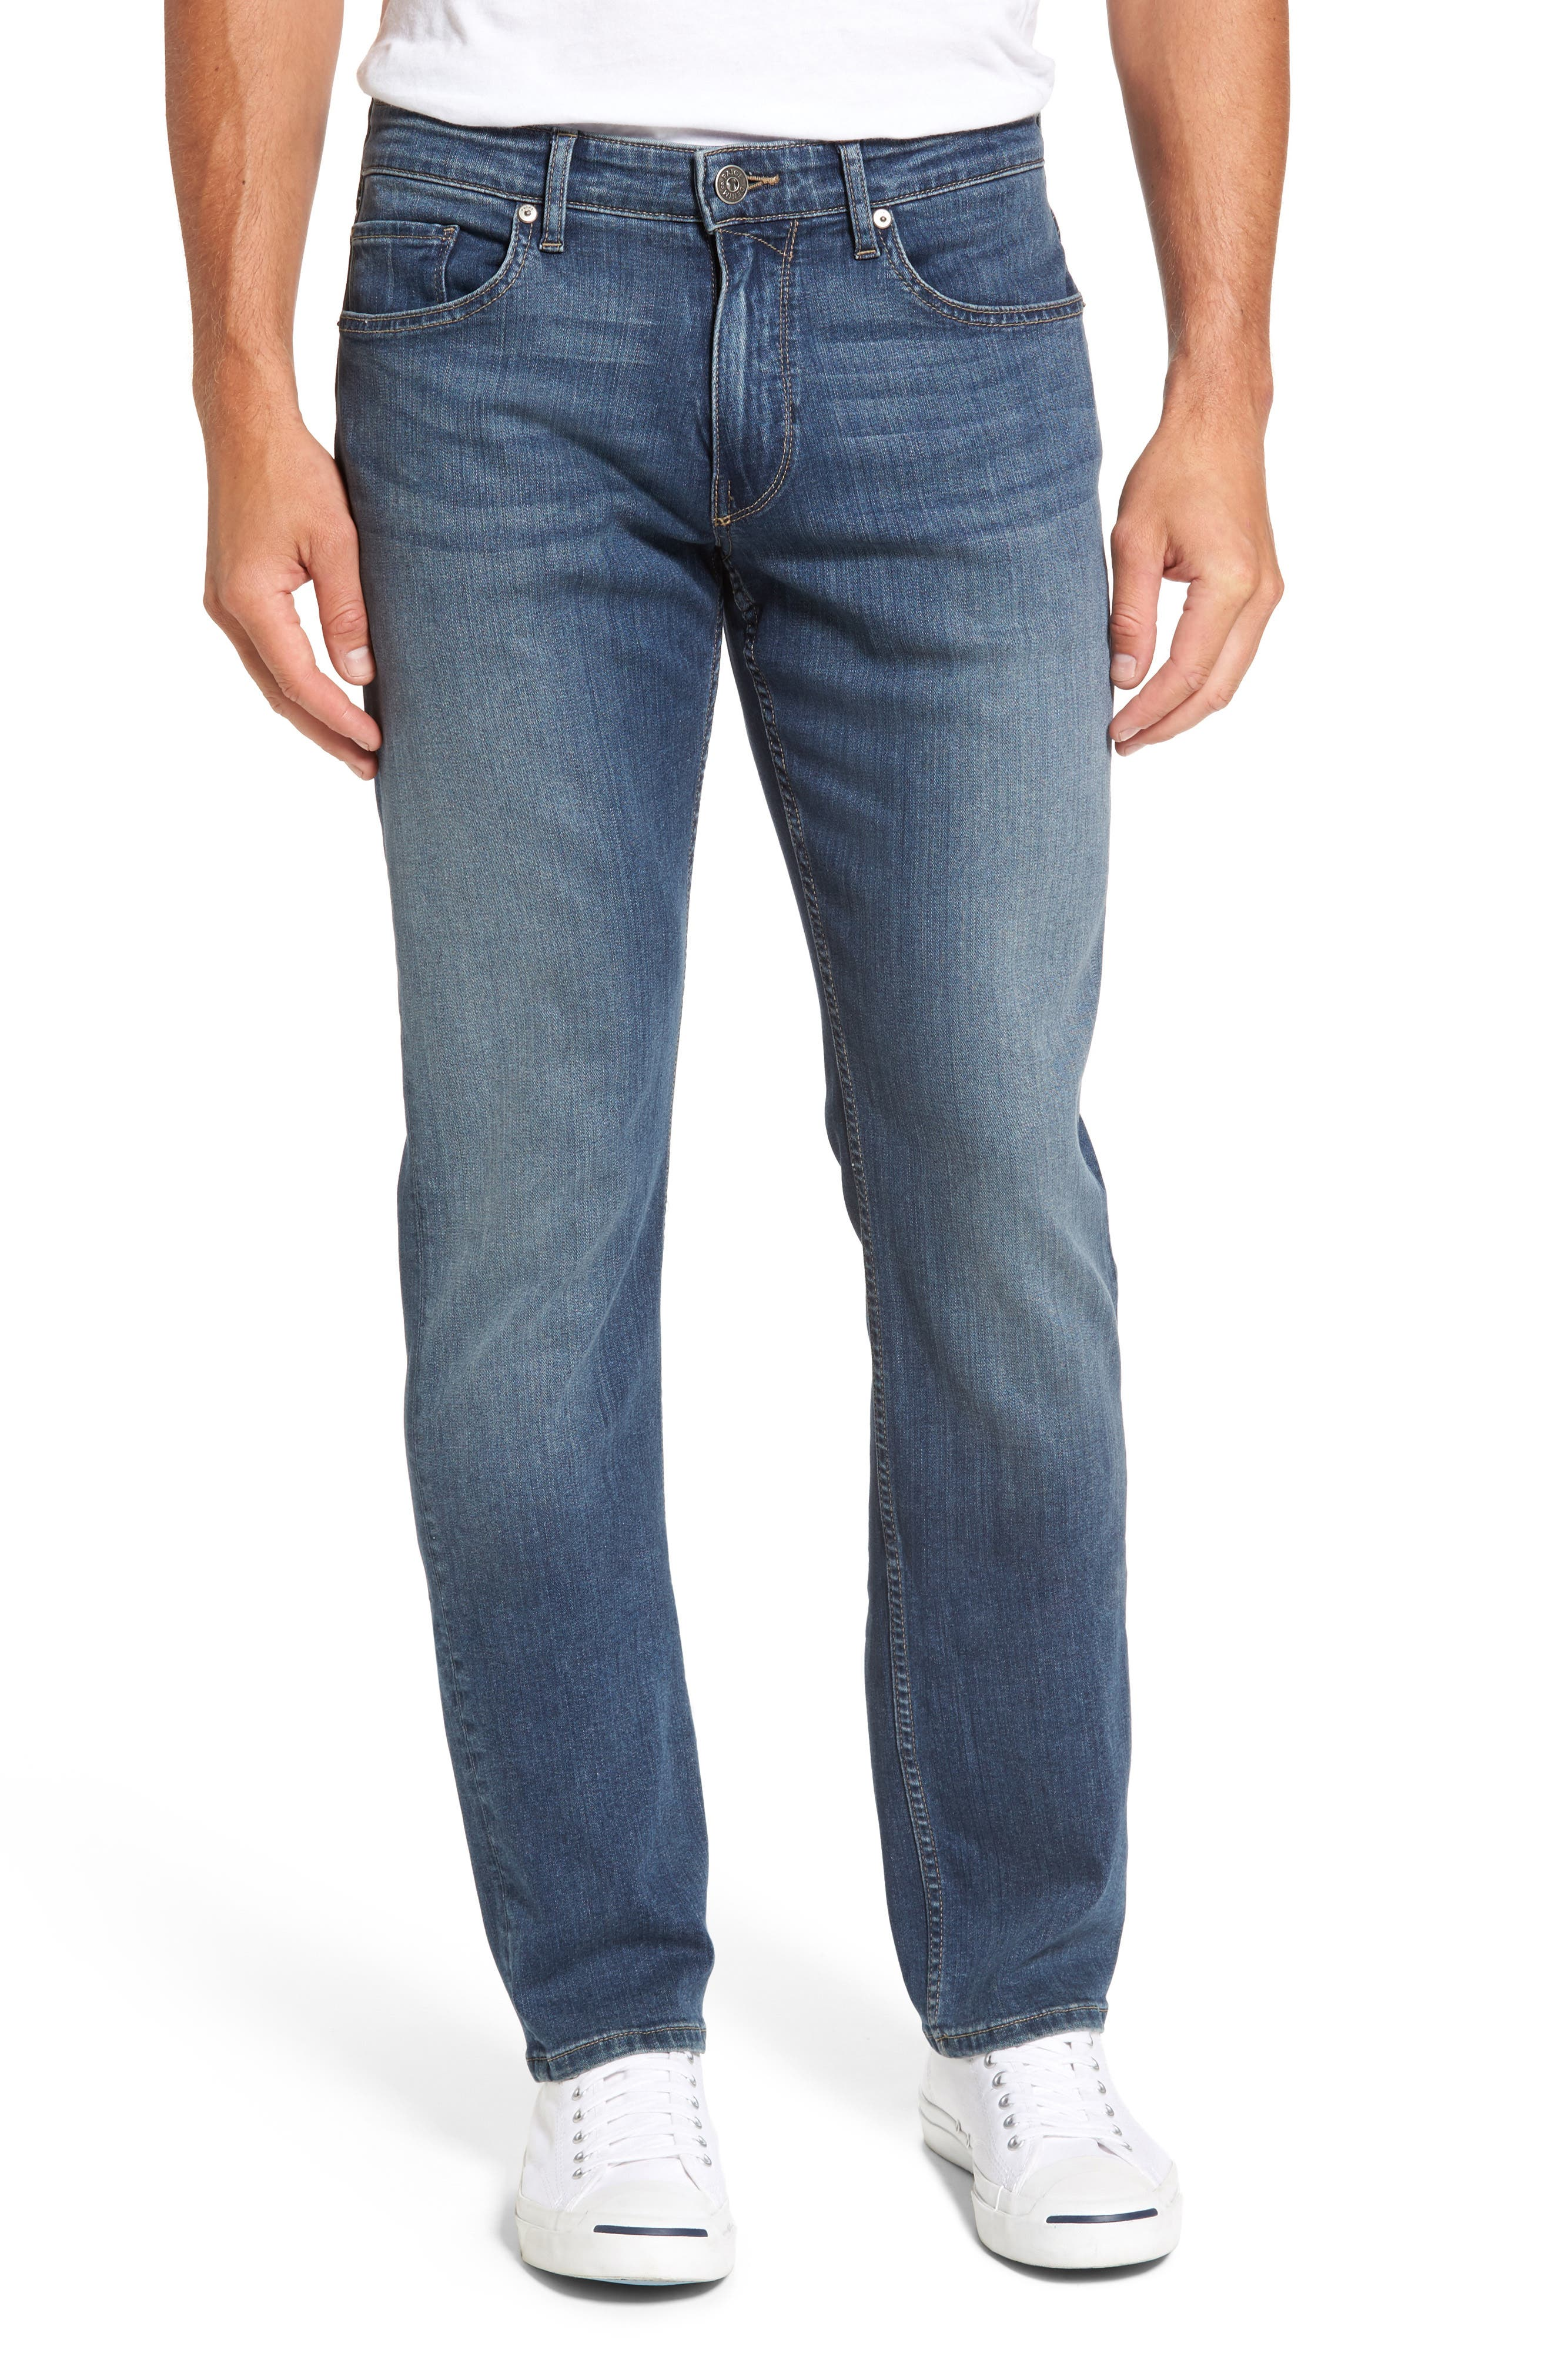 PAIGE Normandie Straight Fit Jeans, Main, color, ALMONT